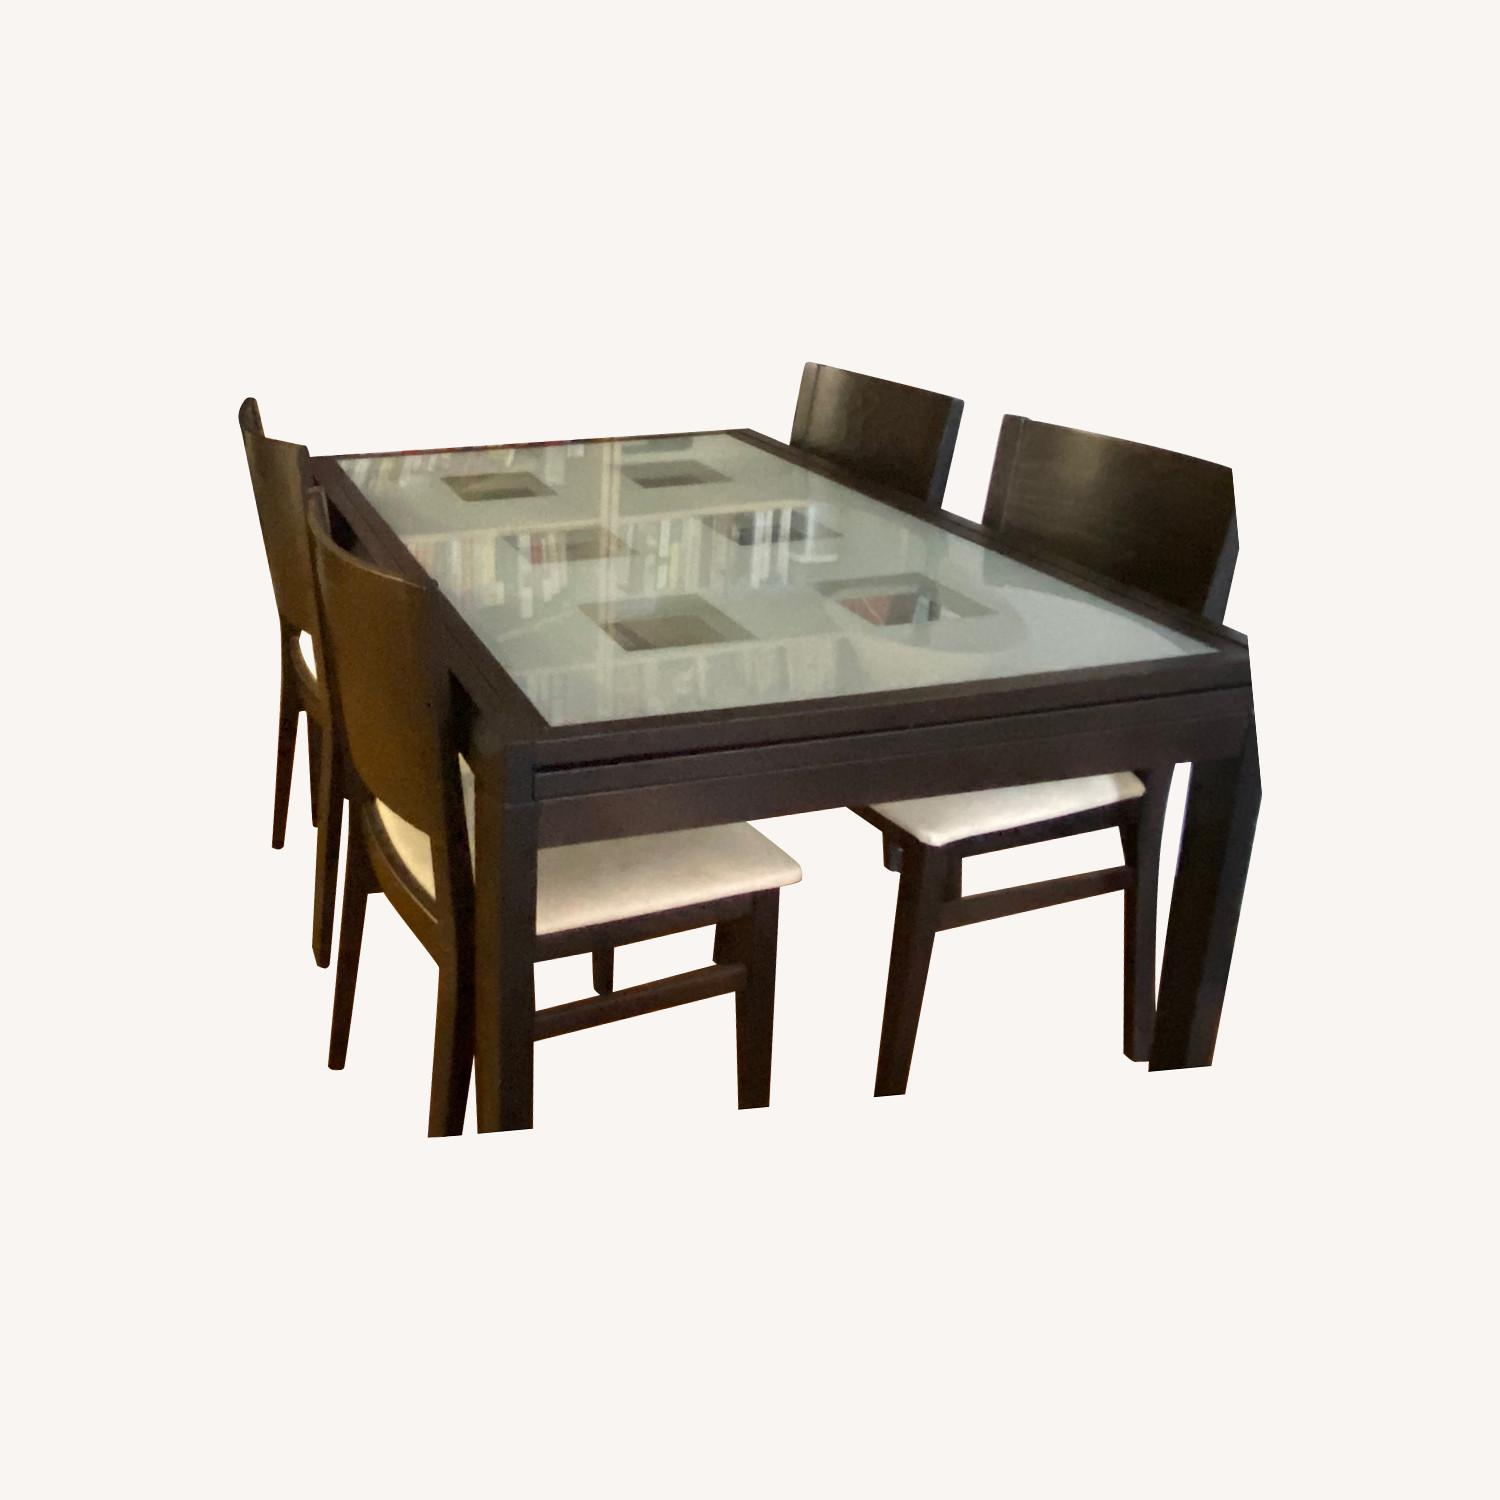 Lovely Dinning Table for four or eight